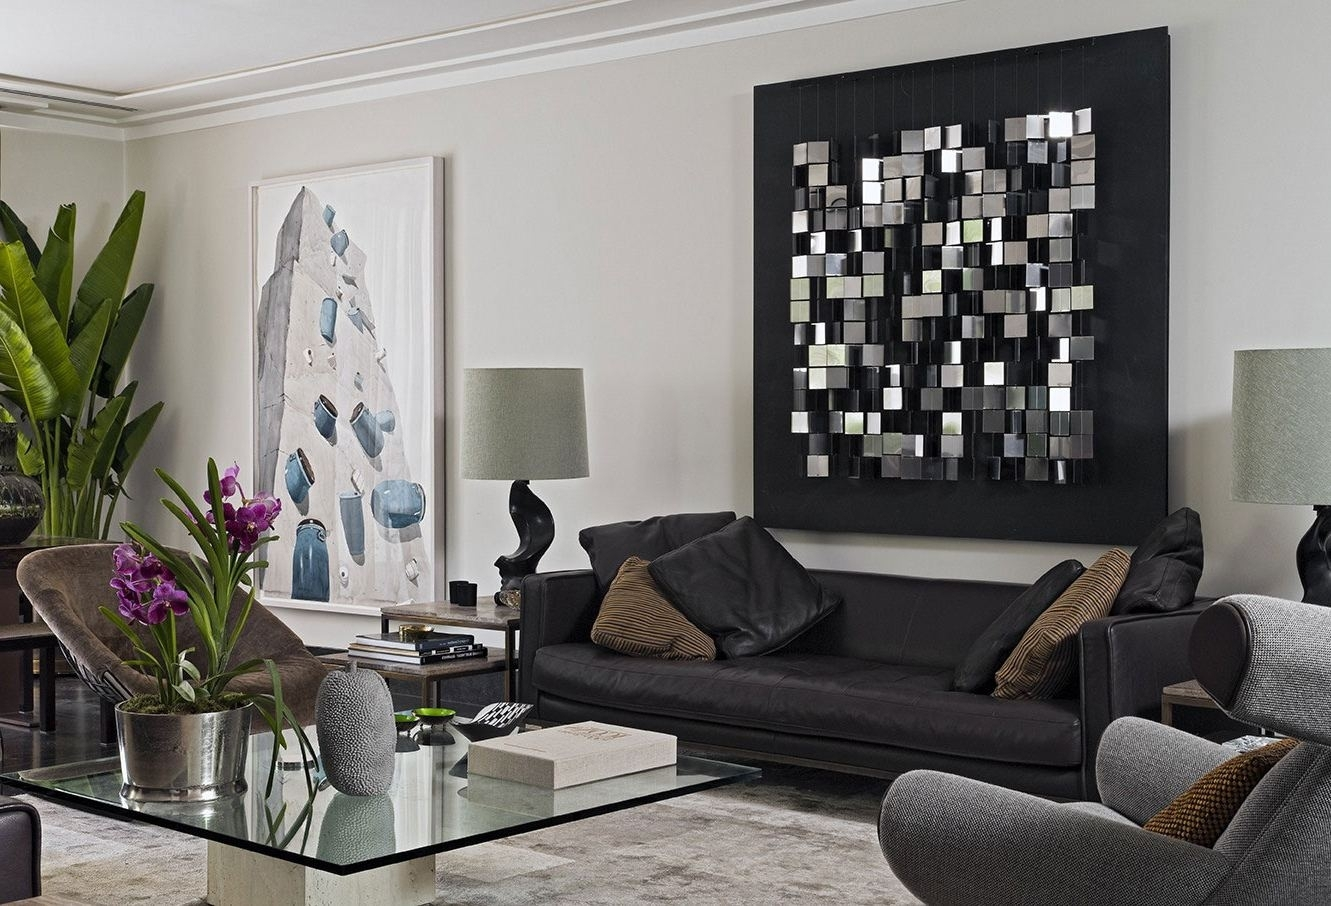 White Living Room Furniture Decorative Gold Finishes Wall Art Within Latest Modern Wall Art Decors (View 4 of 20)